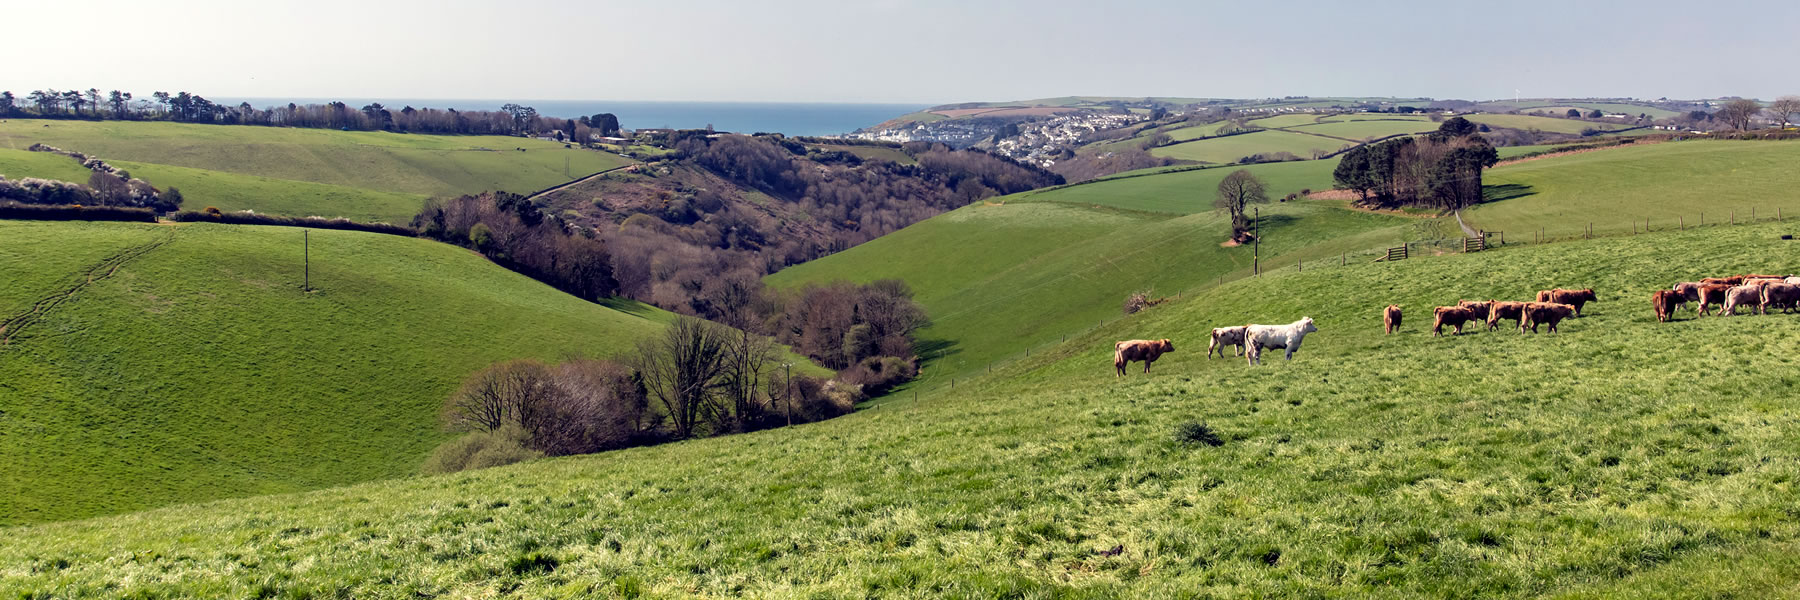 Holiday Cottages near the Sea